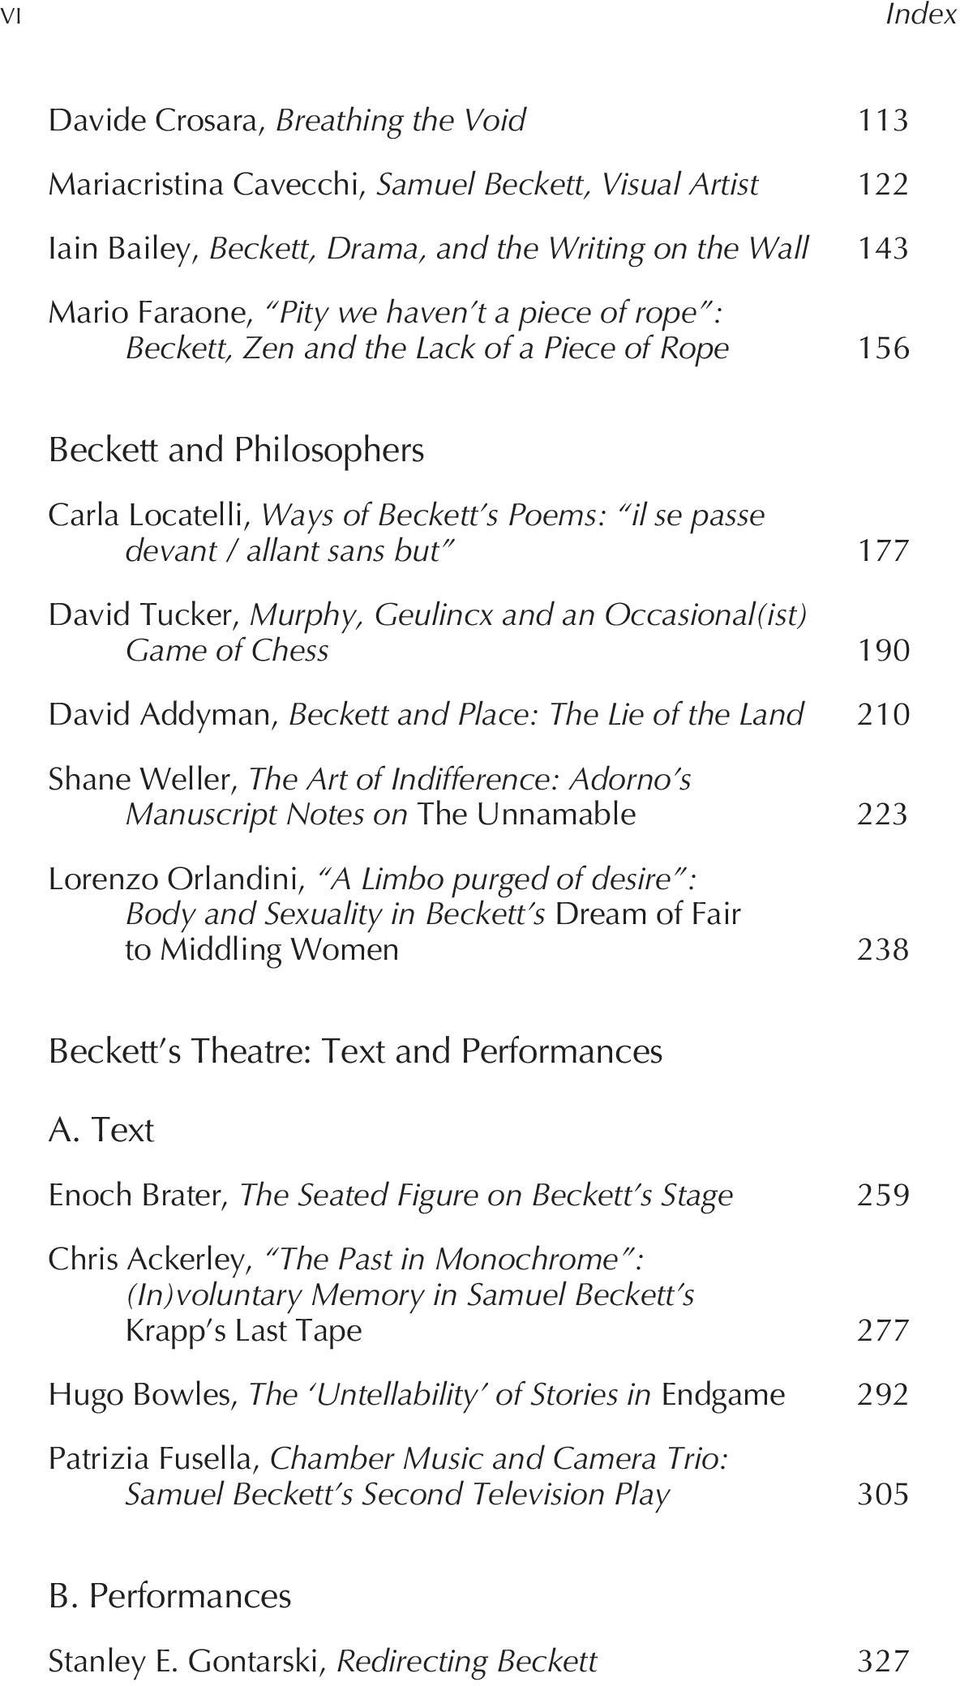 Geulincx and an Occasional(ist) Game of Chess 190 David Addyman, Beckett and Place: The Lie of the Land 210 Shane Weller, The Art of Indifference: Adorno s Manuscript Notes on The Unnamable 223